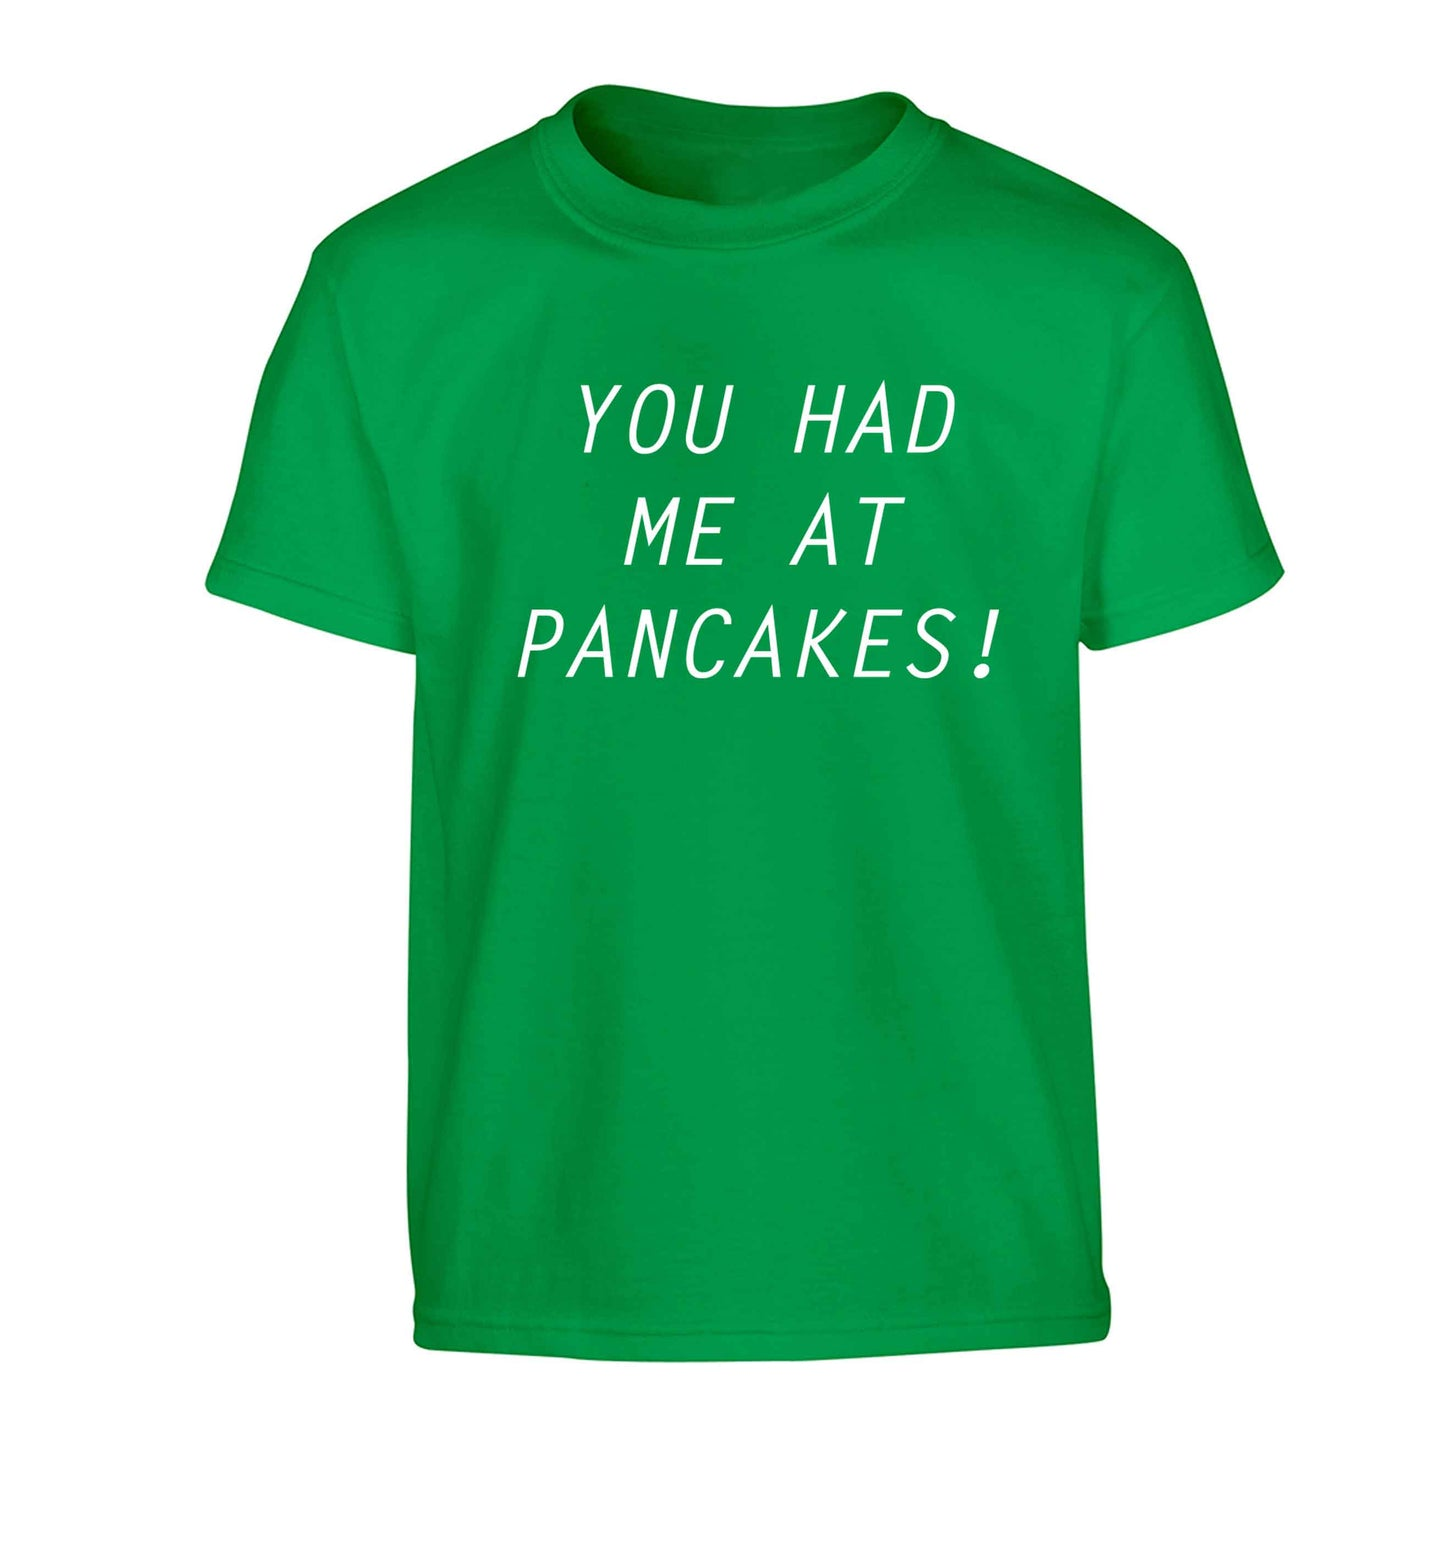 You had me at pancakes Children's green Tshirt 12-13 Years